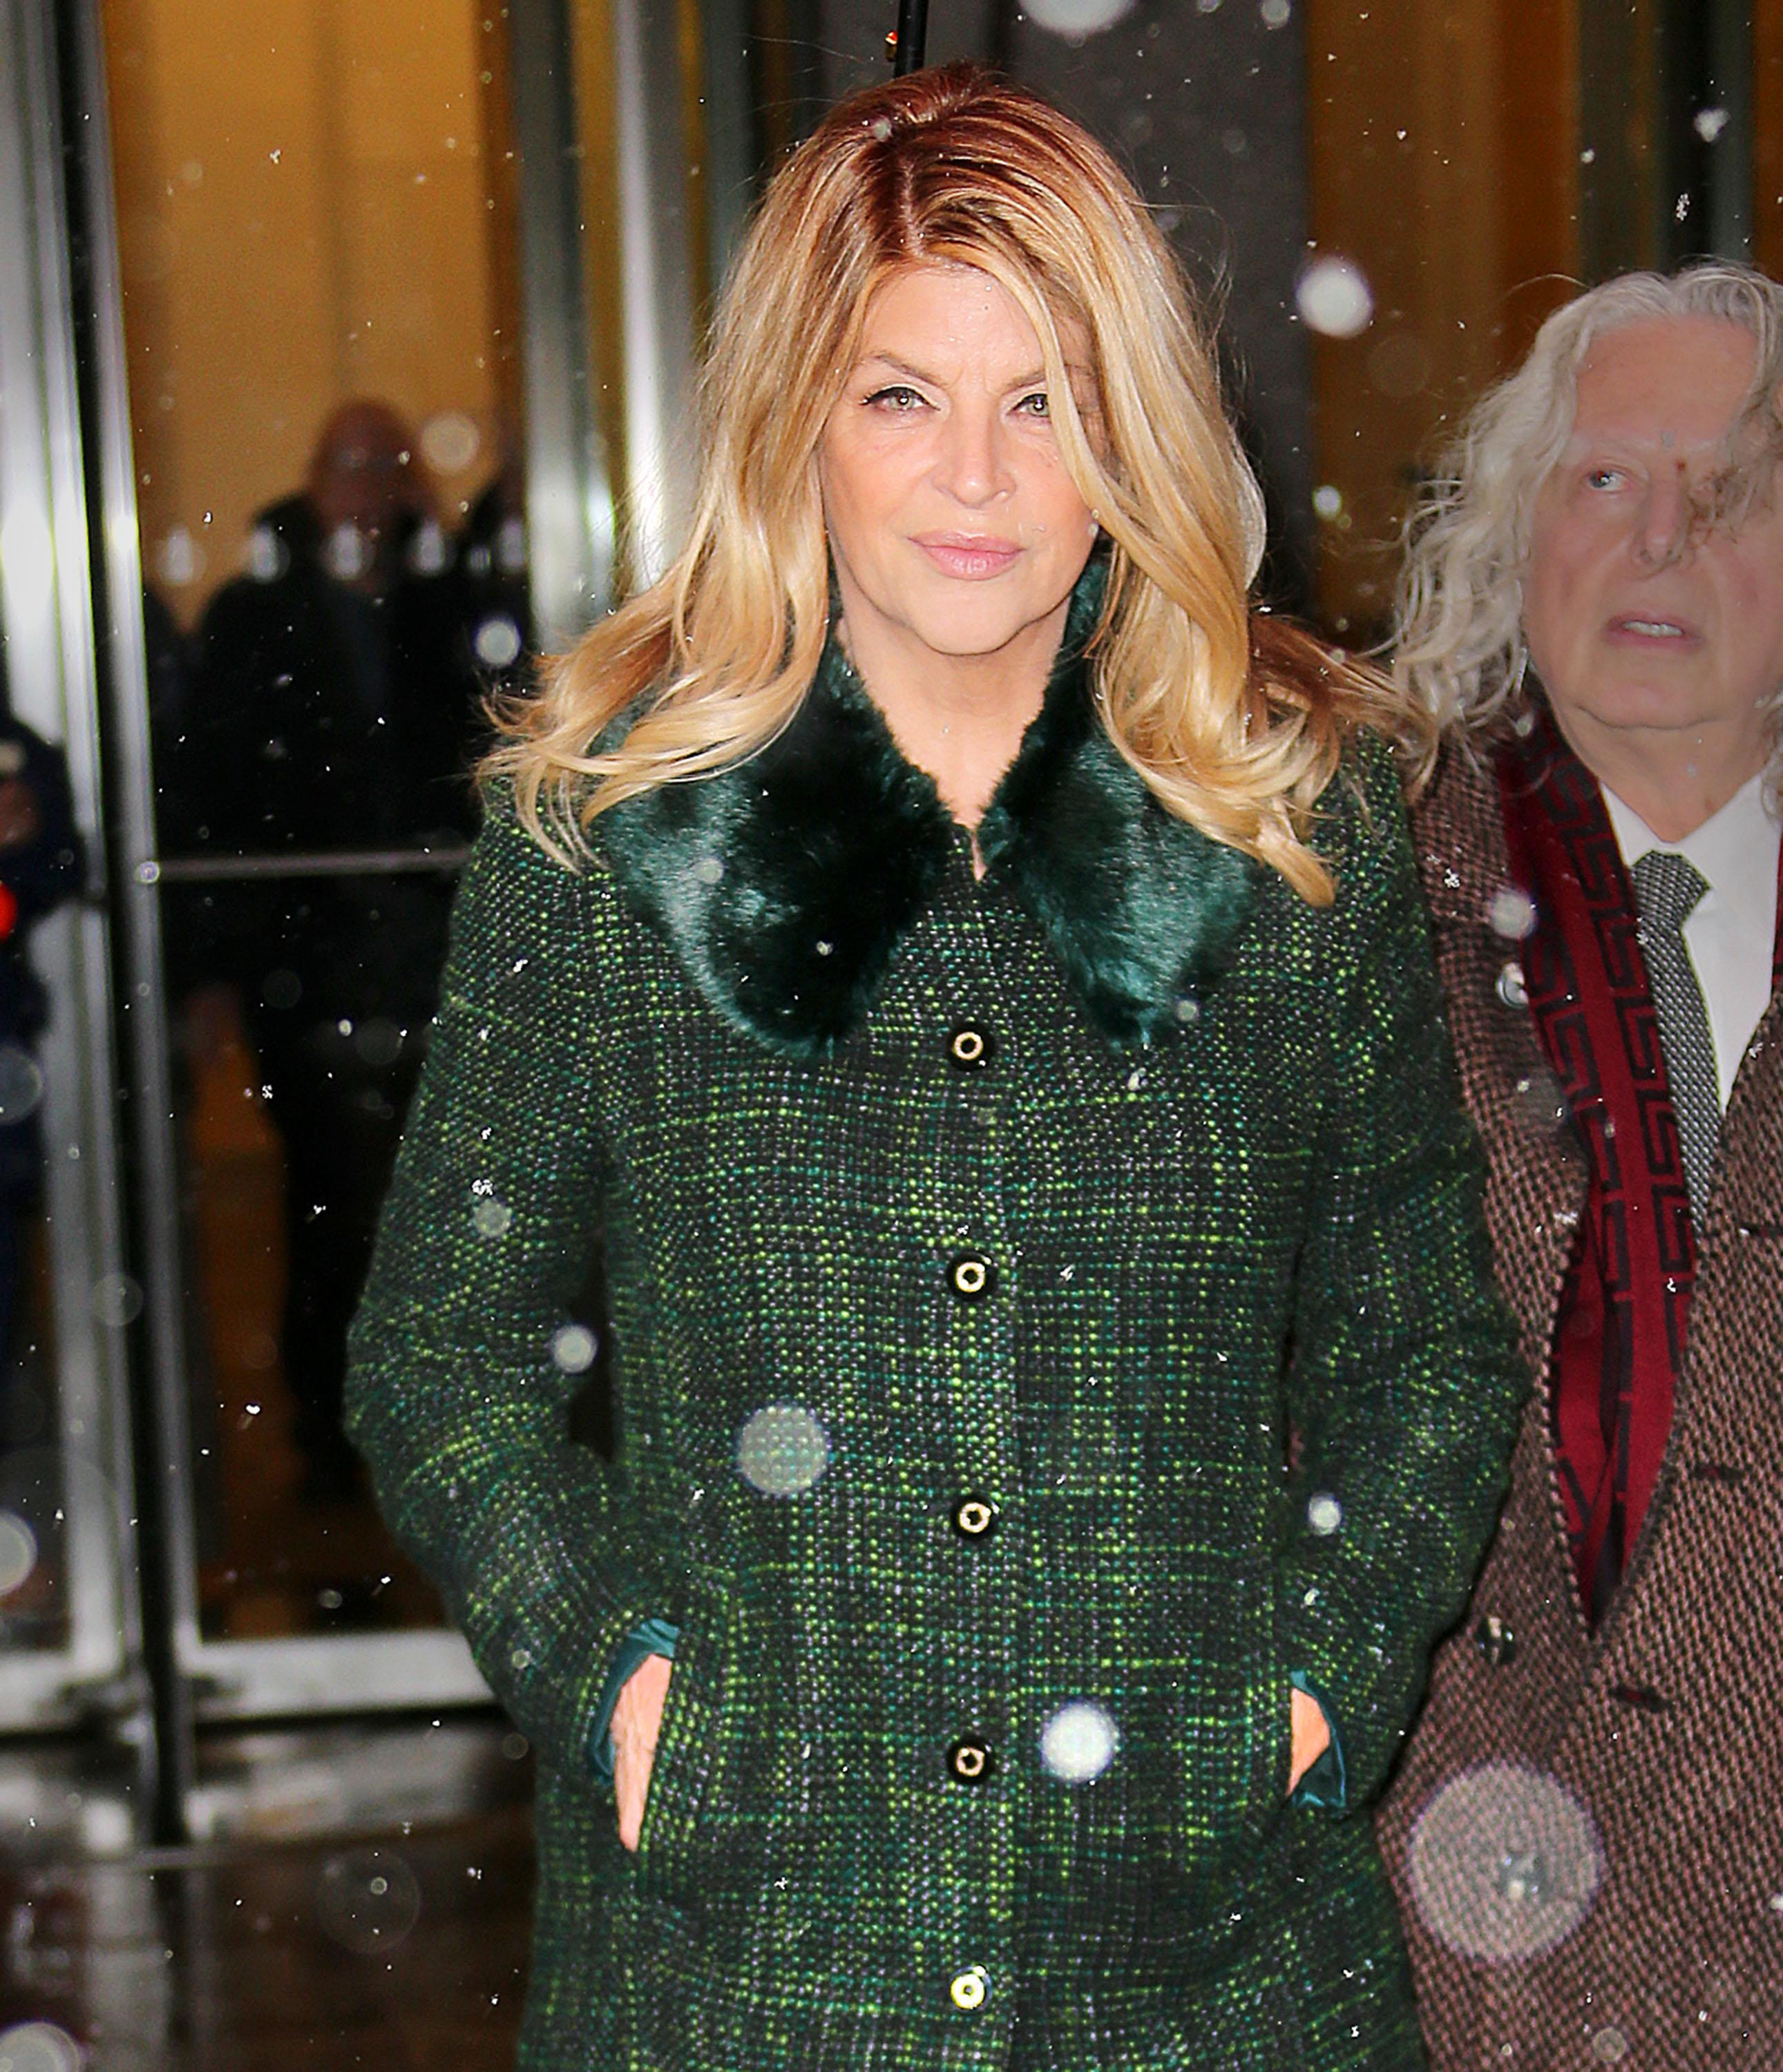 Kirstie Alley at Sirius Radio in NYC